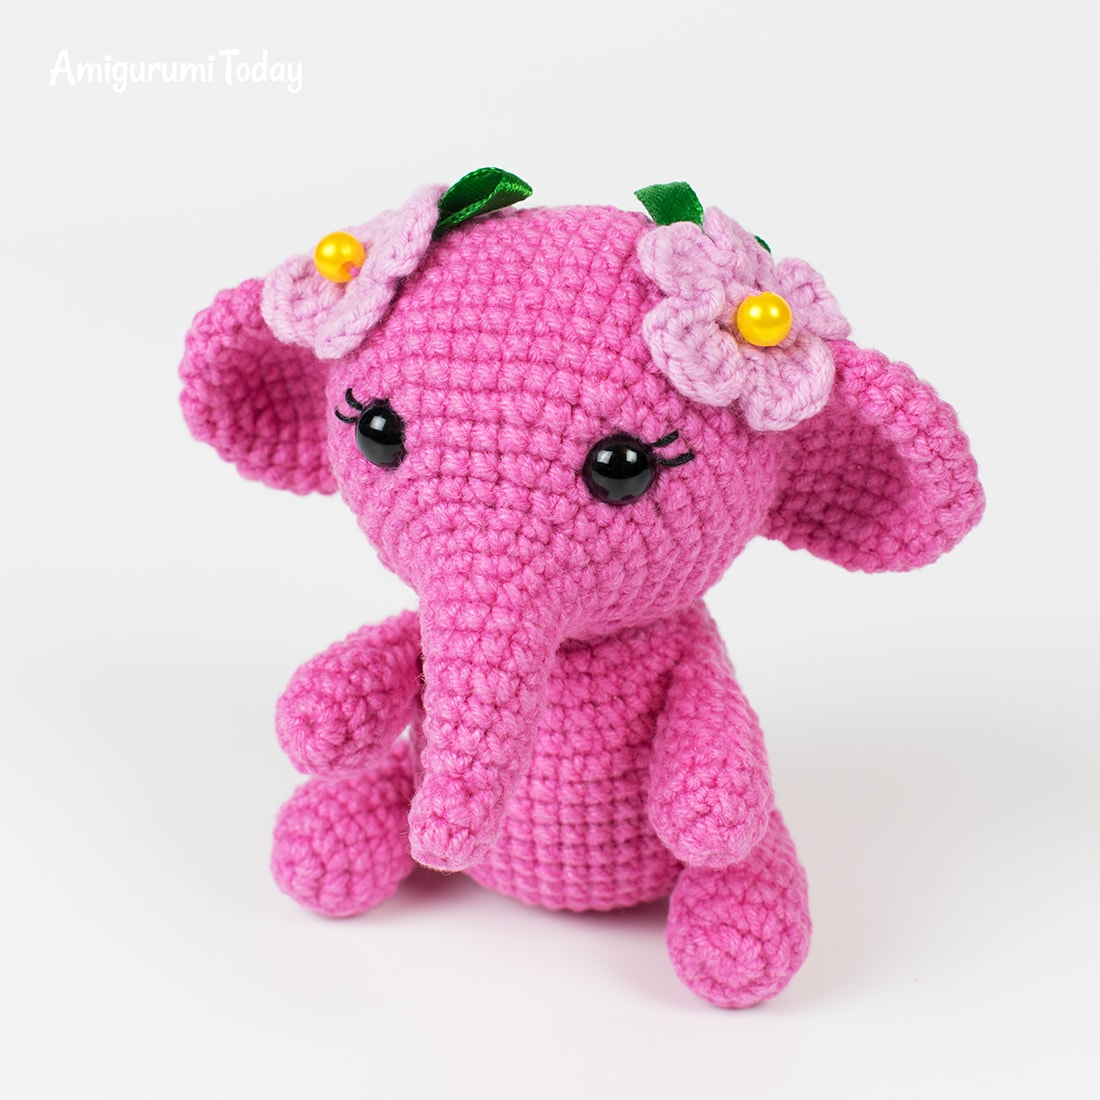 Bella the little elephant amigurumi pattern - Amigurumipatterns.net | 1100x1100